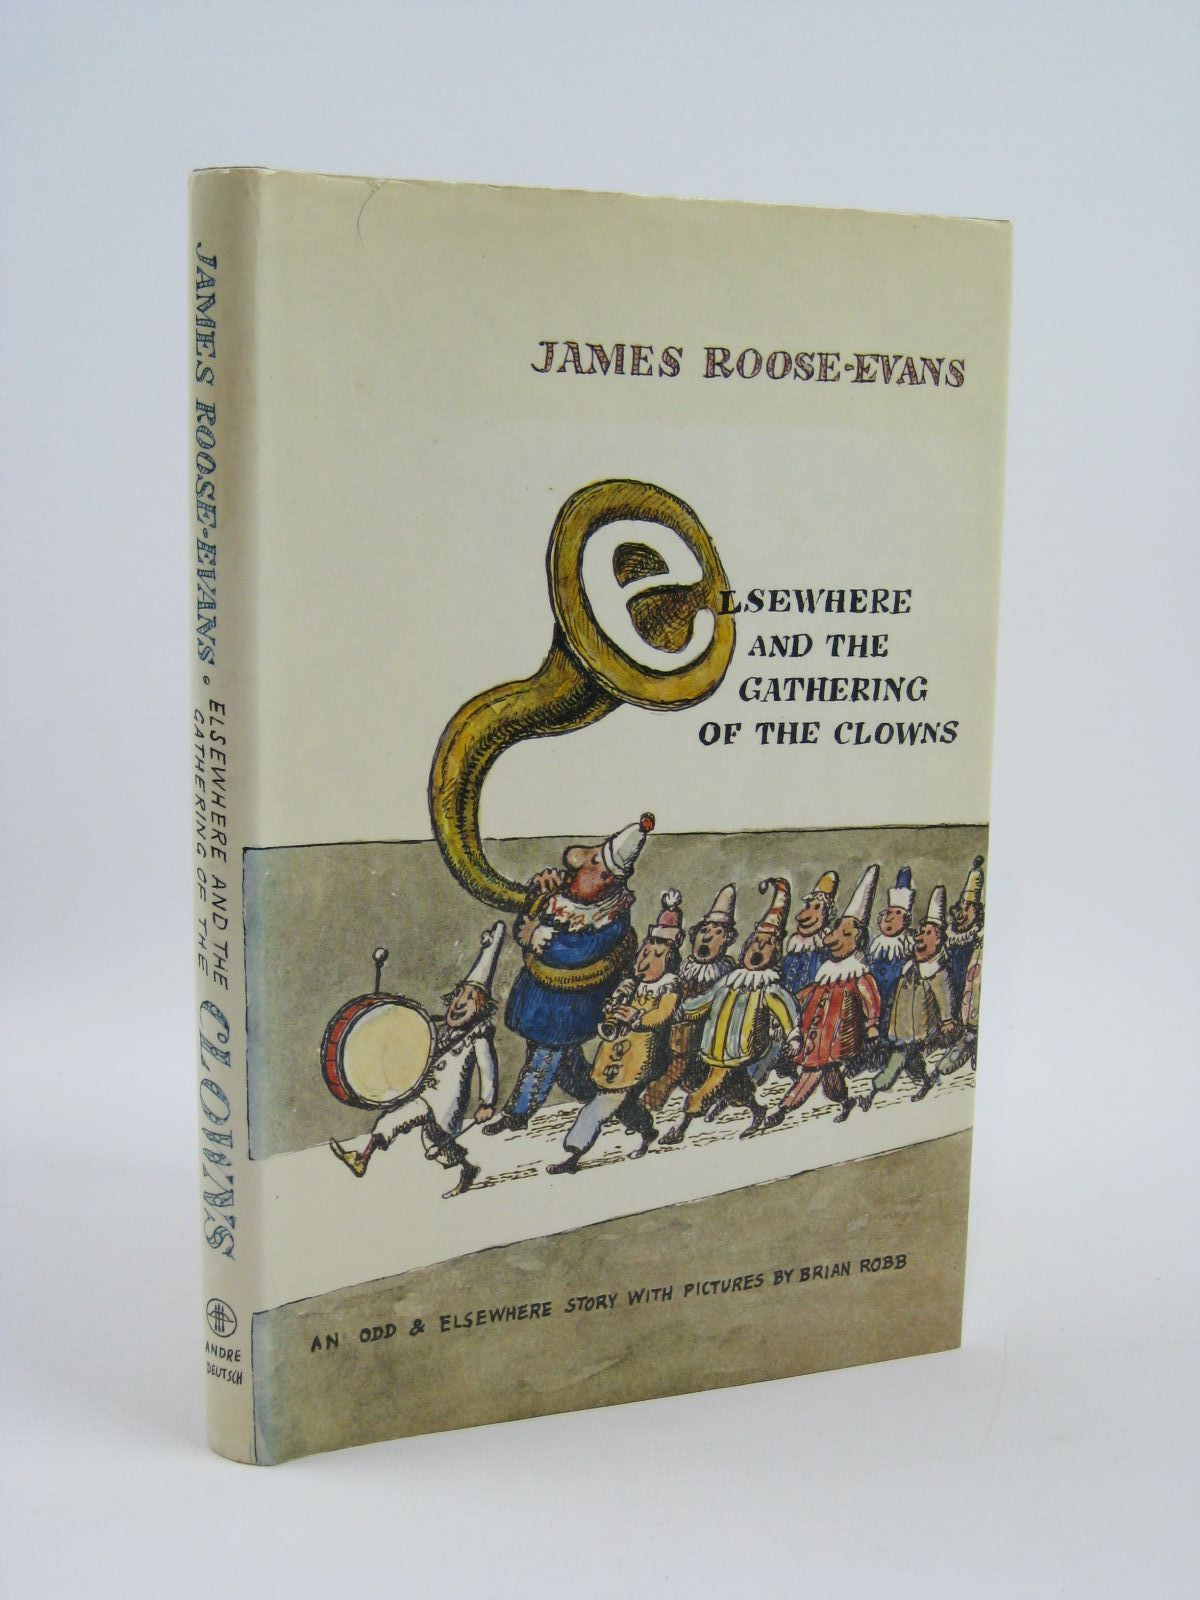 Photo of ELSEWHERE AND THE GATHERING OF THE CLOWNS written by Roose-Evans, James illustrated by Robb, Brian published by Andre Deutsch (STOCK CODE: 1406208)  for sale by Stella & Rose's Books